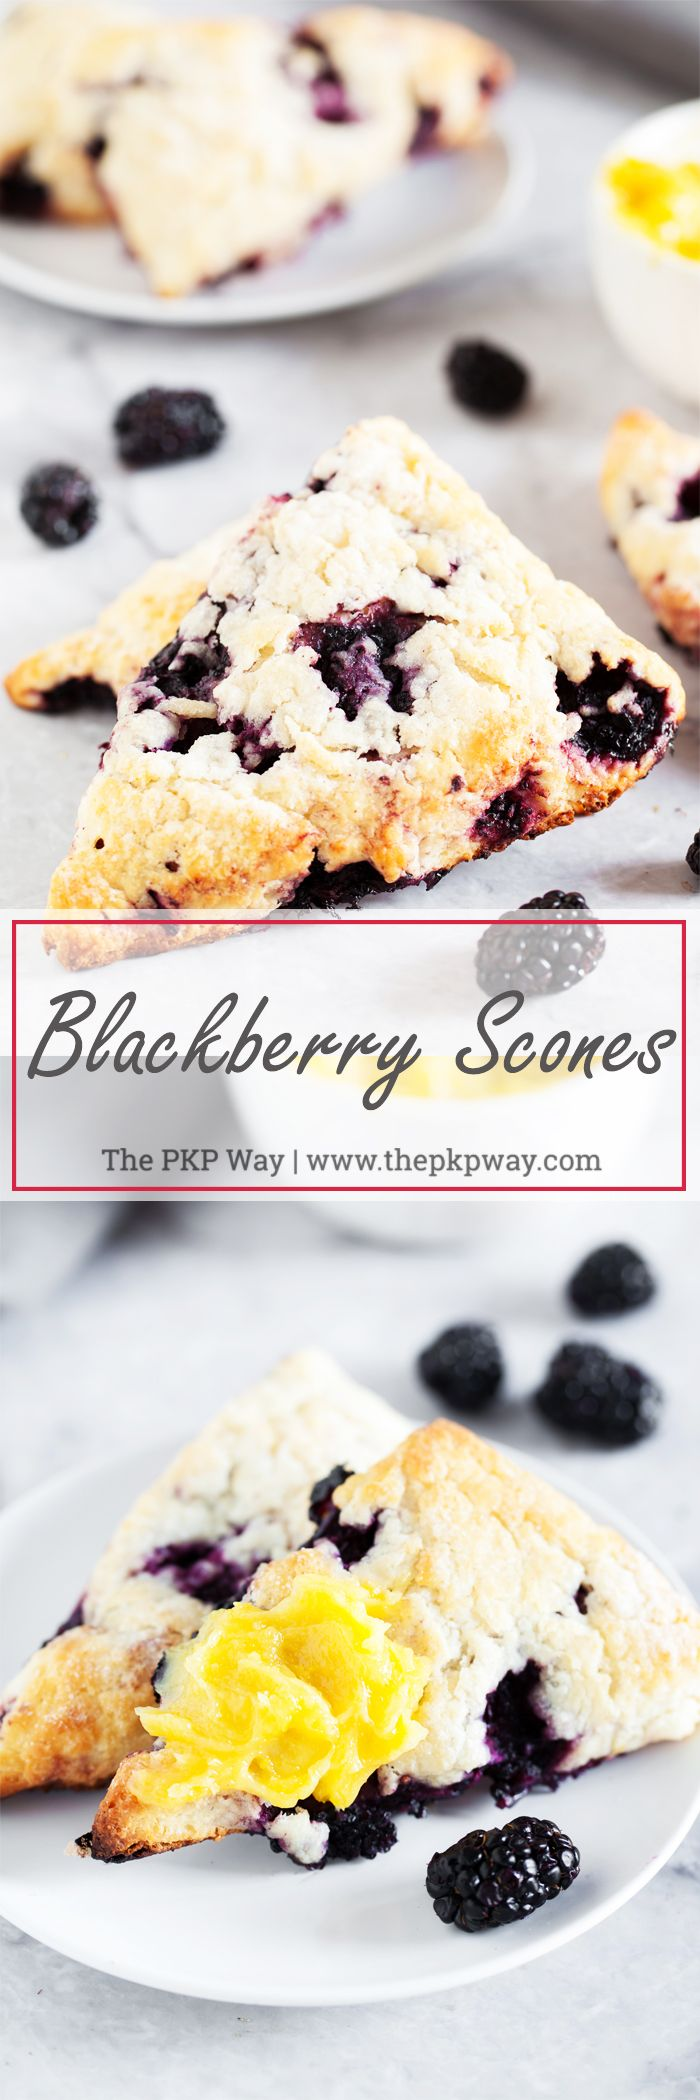 Flaky, buttery, berry-licious Blackberry Scones are packed with juicy blackberries and make the perfect snack or on-the-go breakfast.